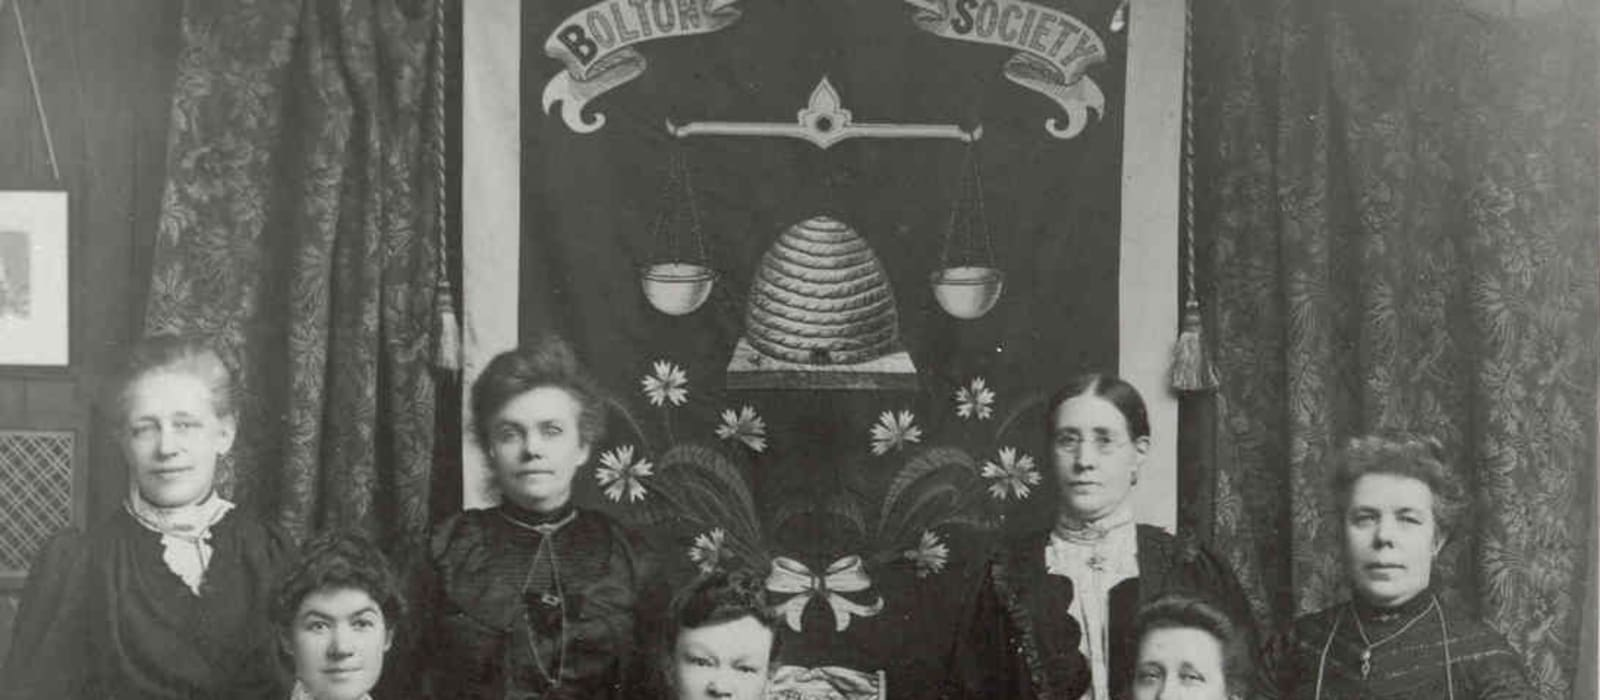 The Story of the Co-operative Women's Guild